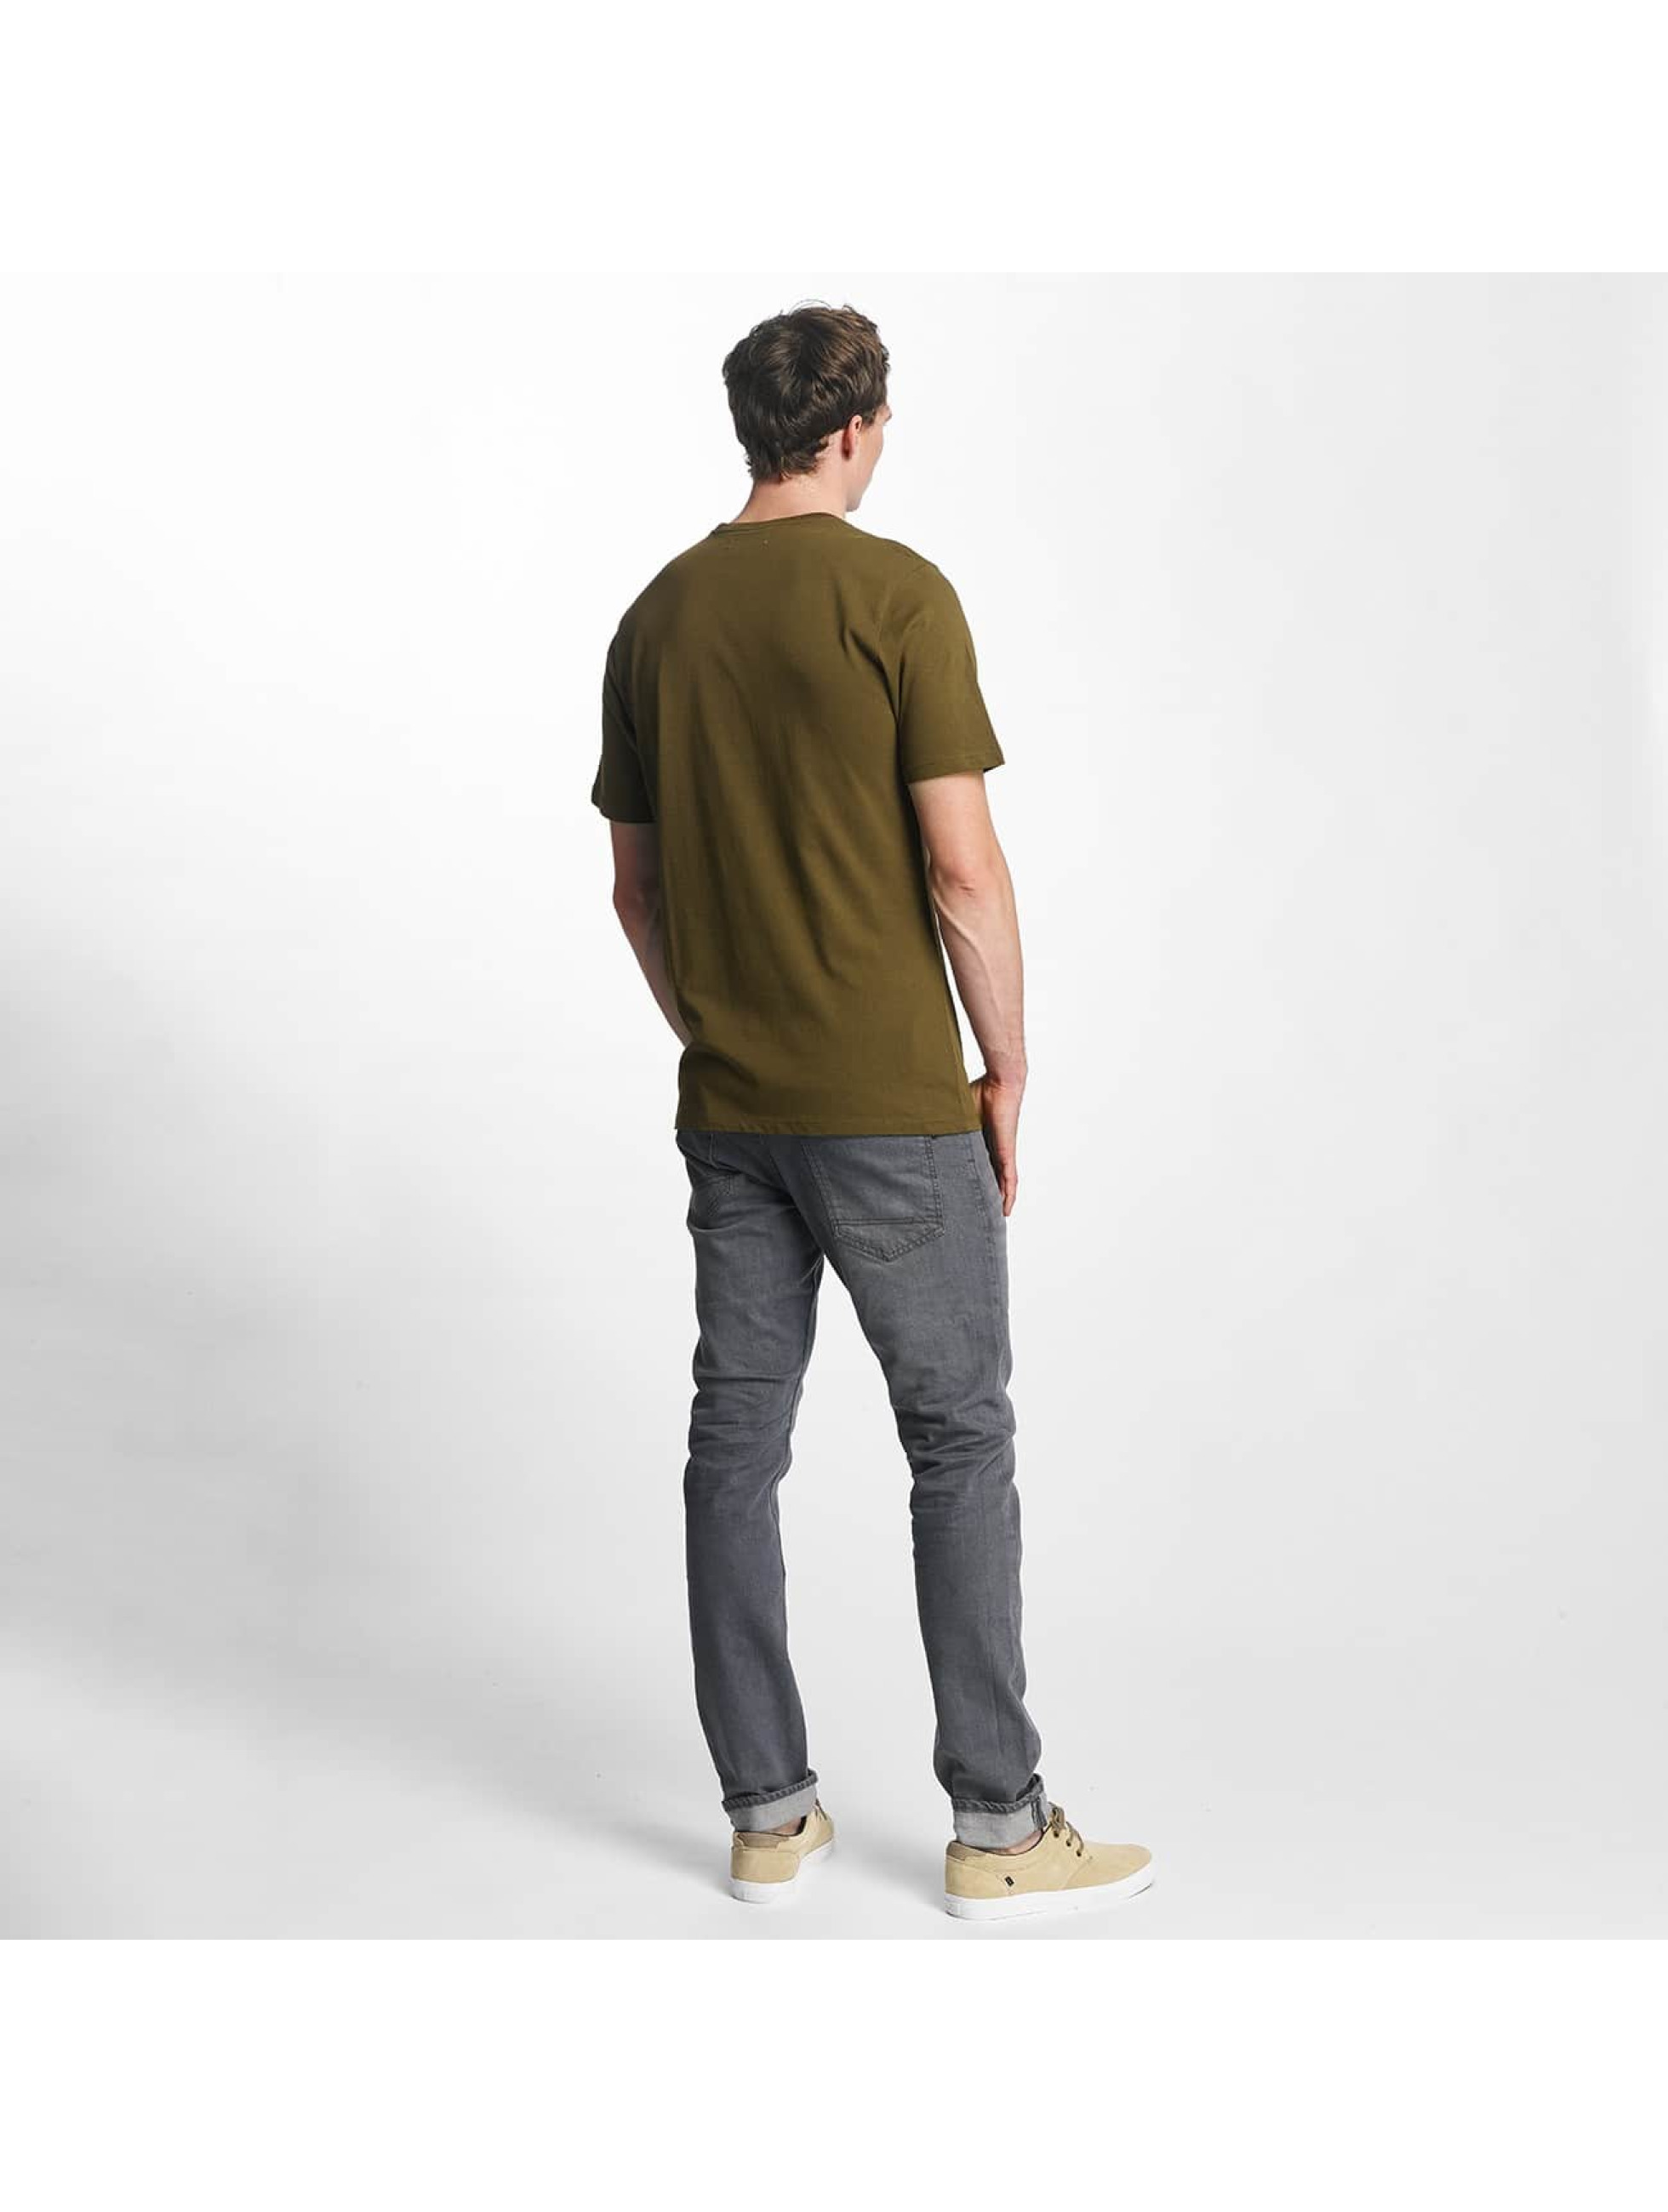 Reell Jeans T-skjorter Small Script oliven